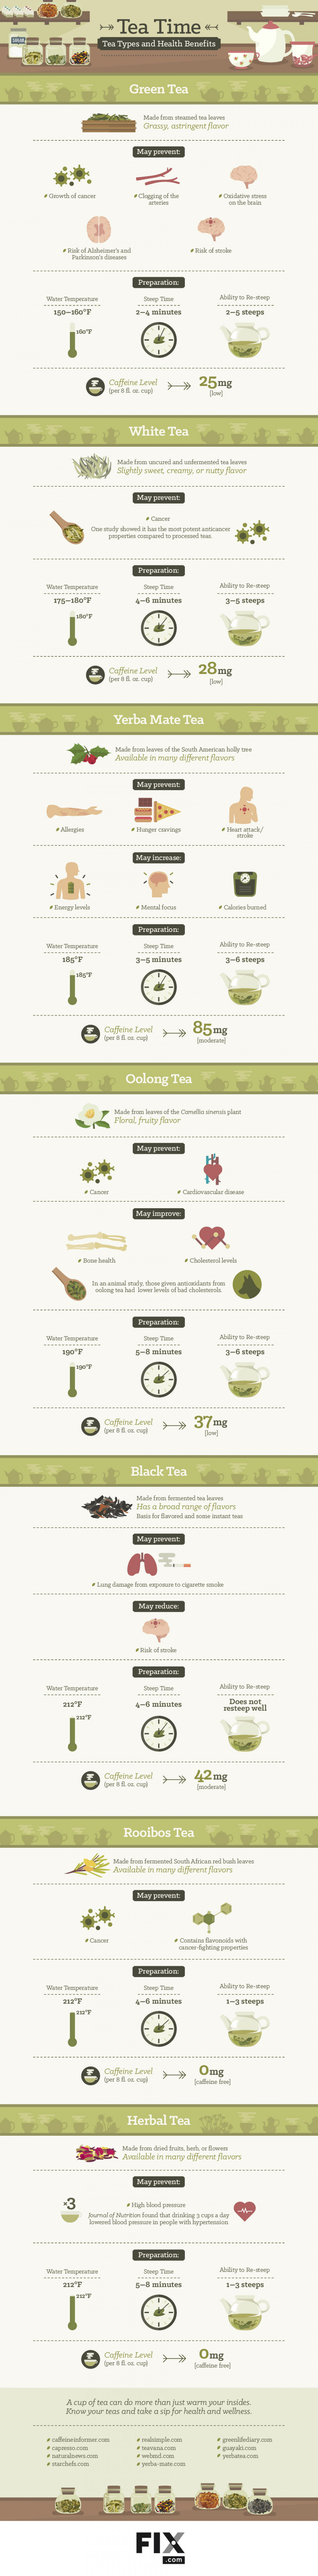 Tea Time: Types of Tea and Their Benefits Infographic